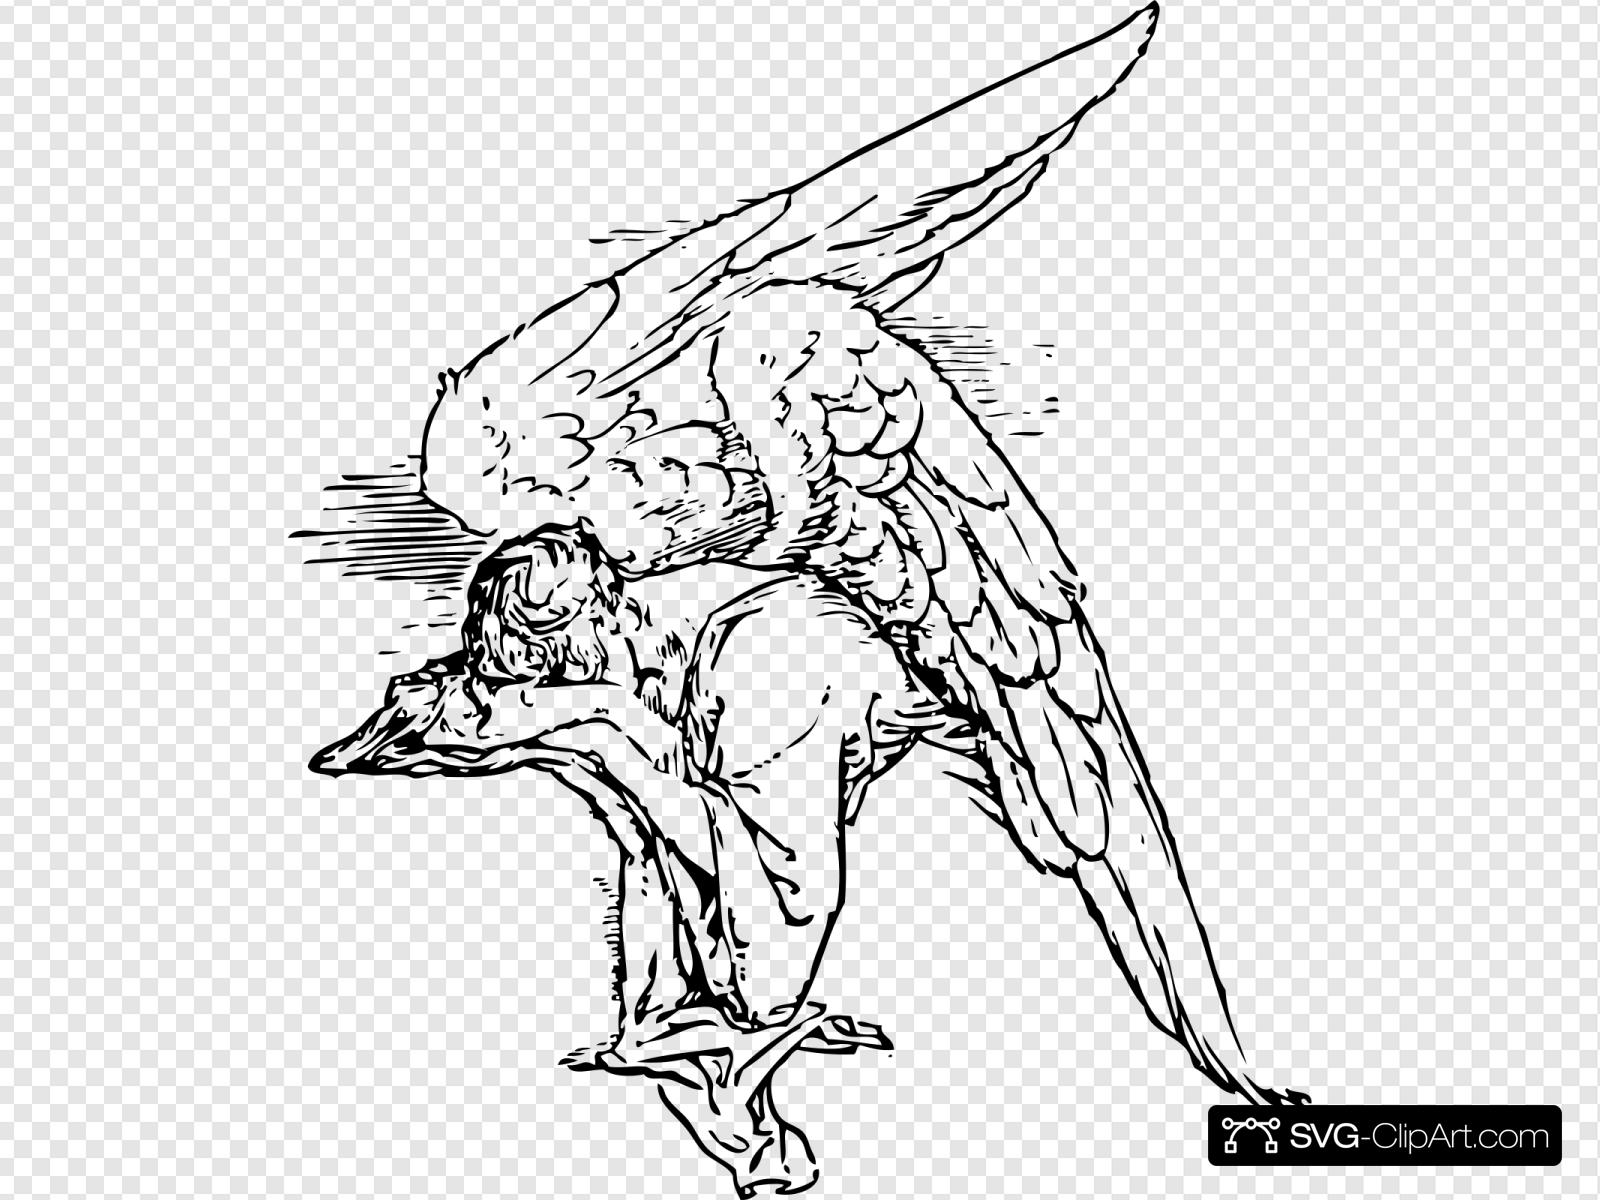 Grieving Angel Tattoo